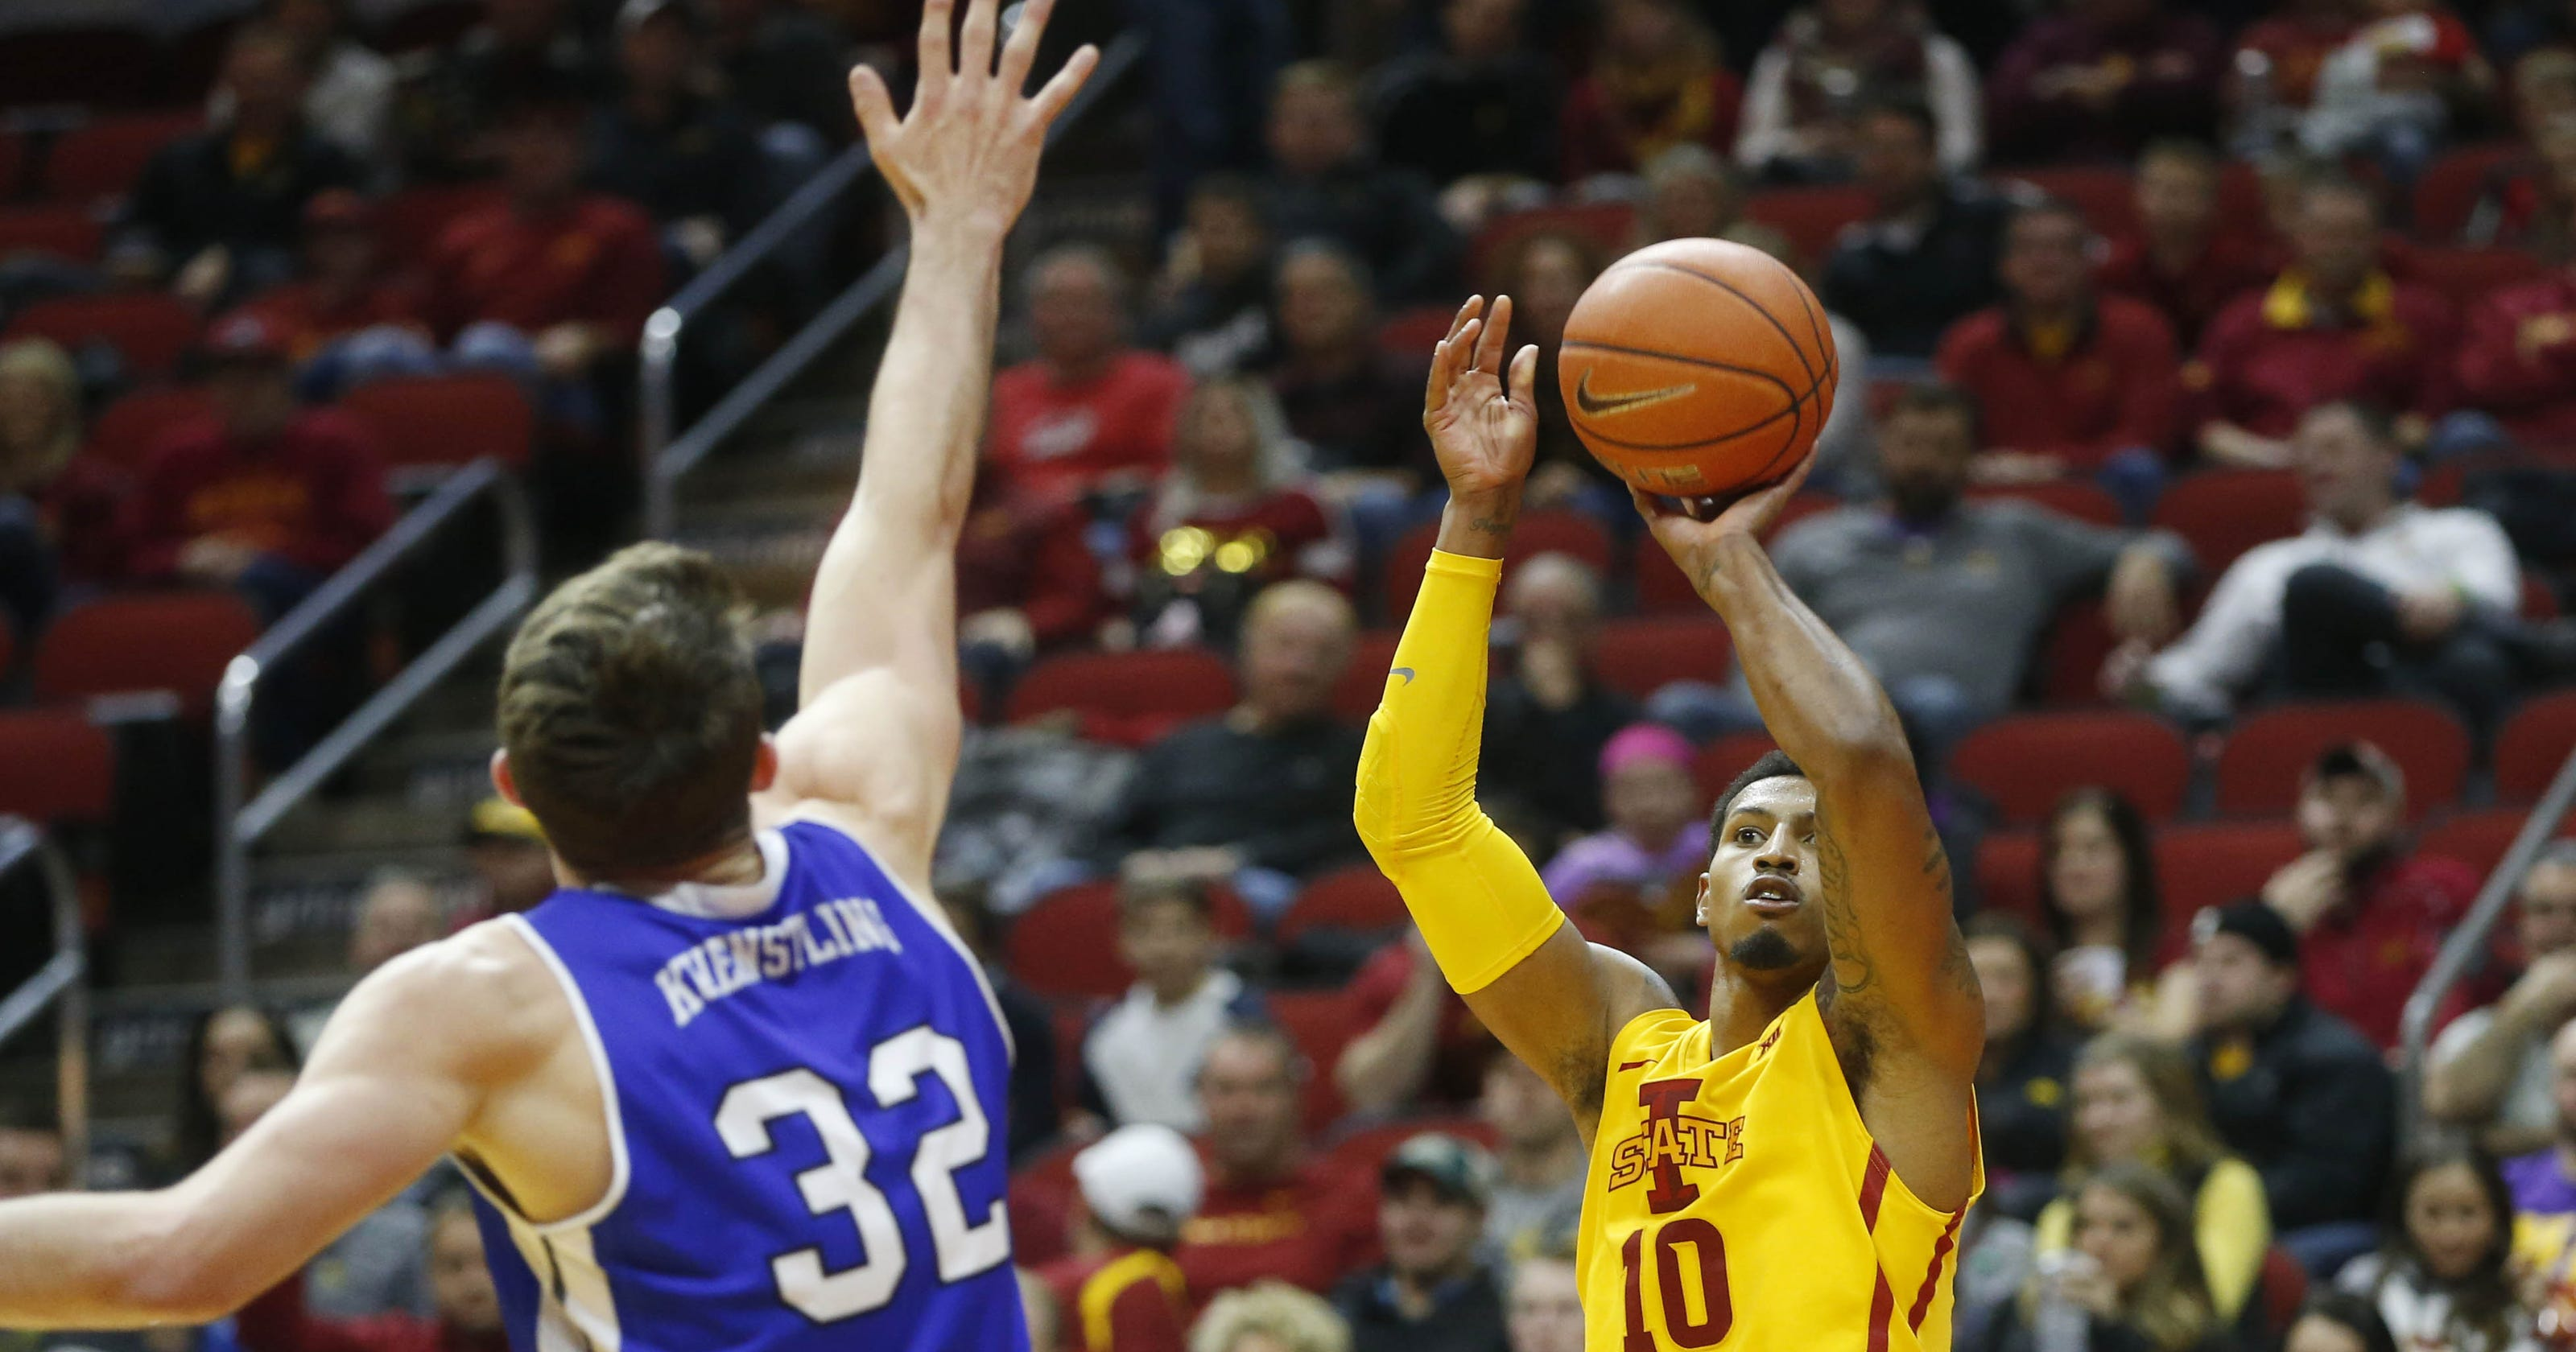 isu mens basketball score - HD 1600×800